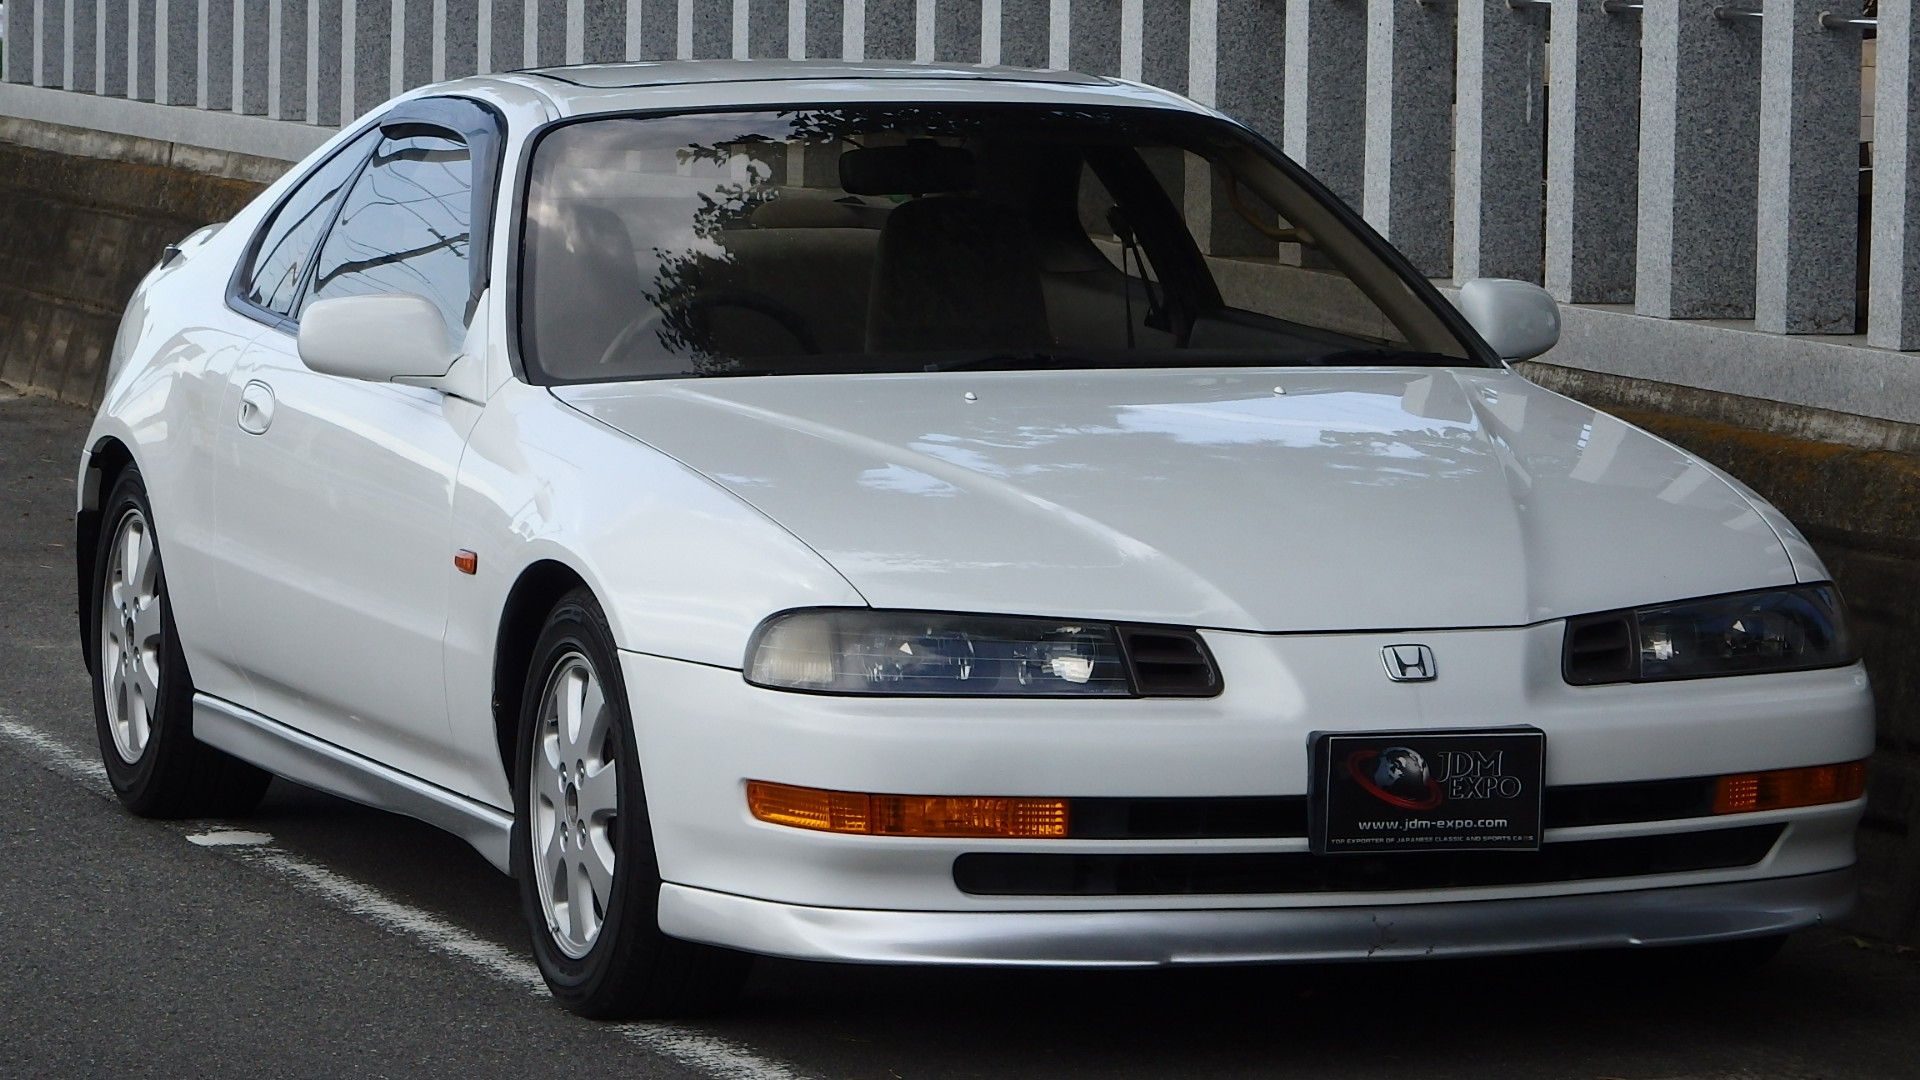 Honda Prelude For Sale At Jdm Expo